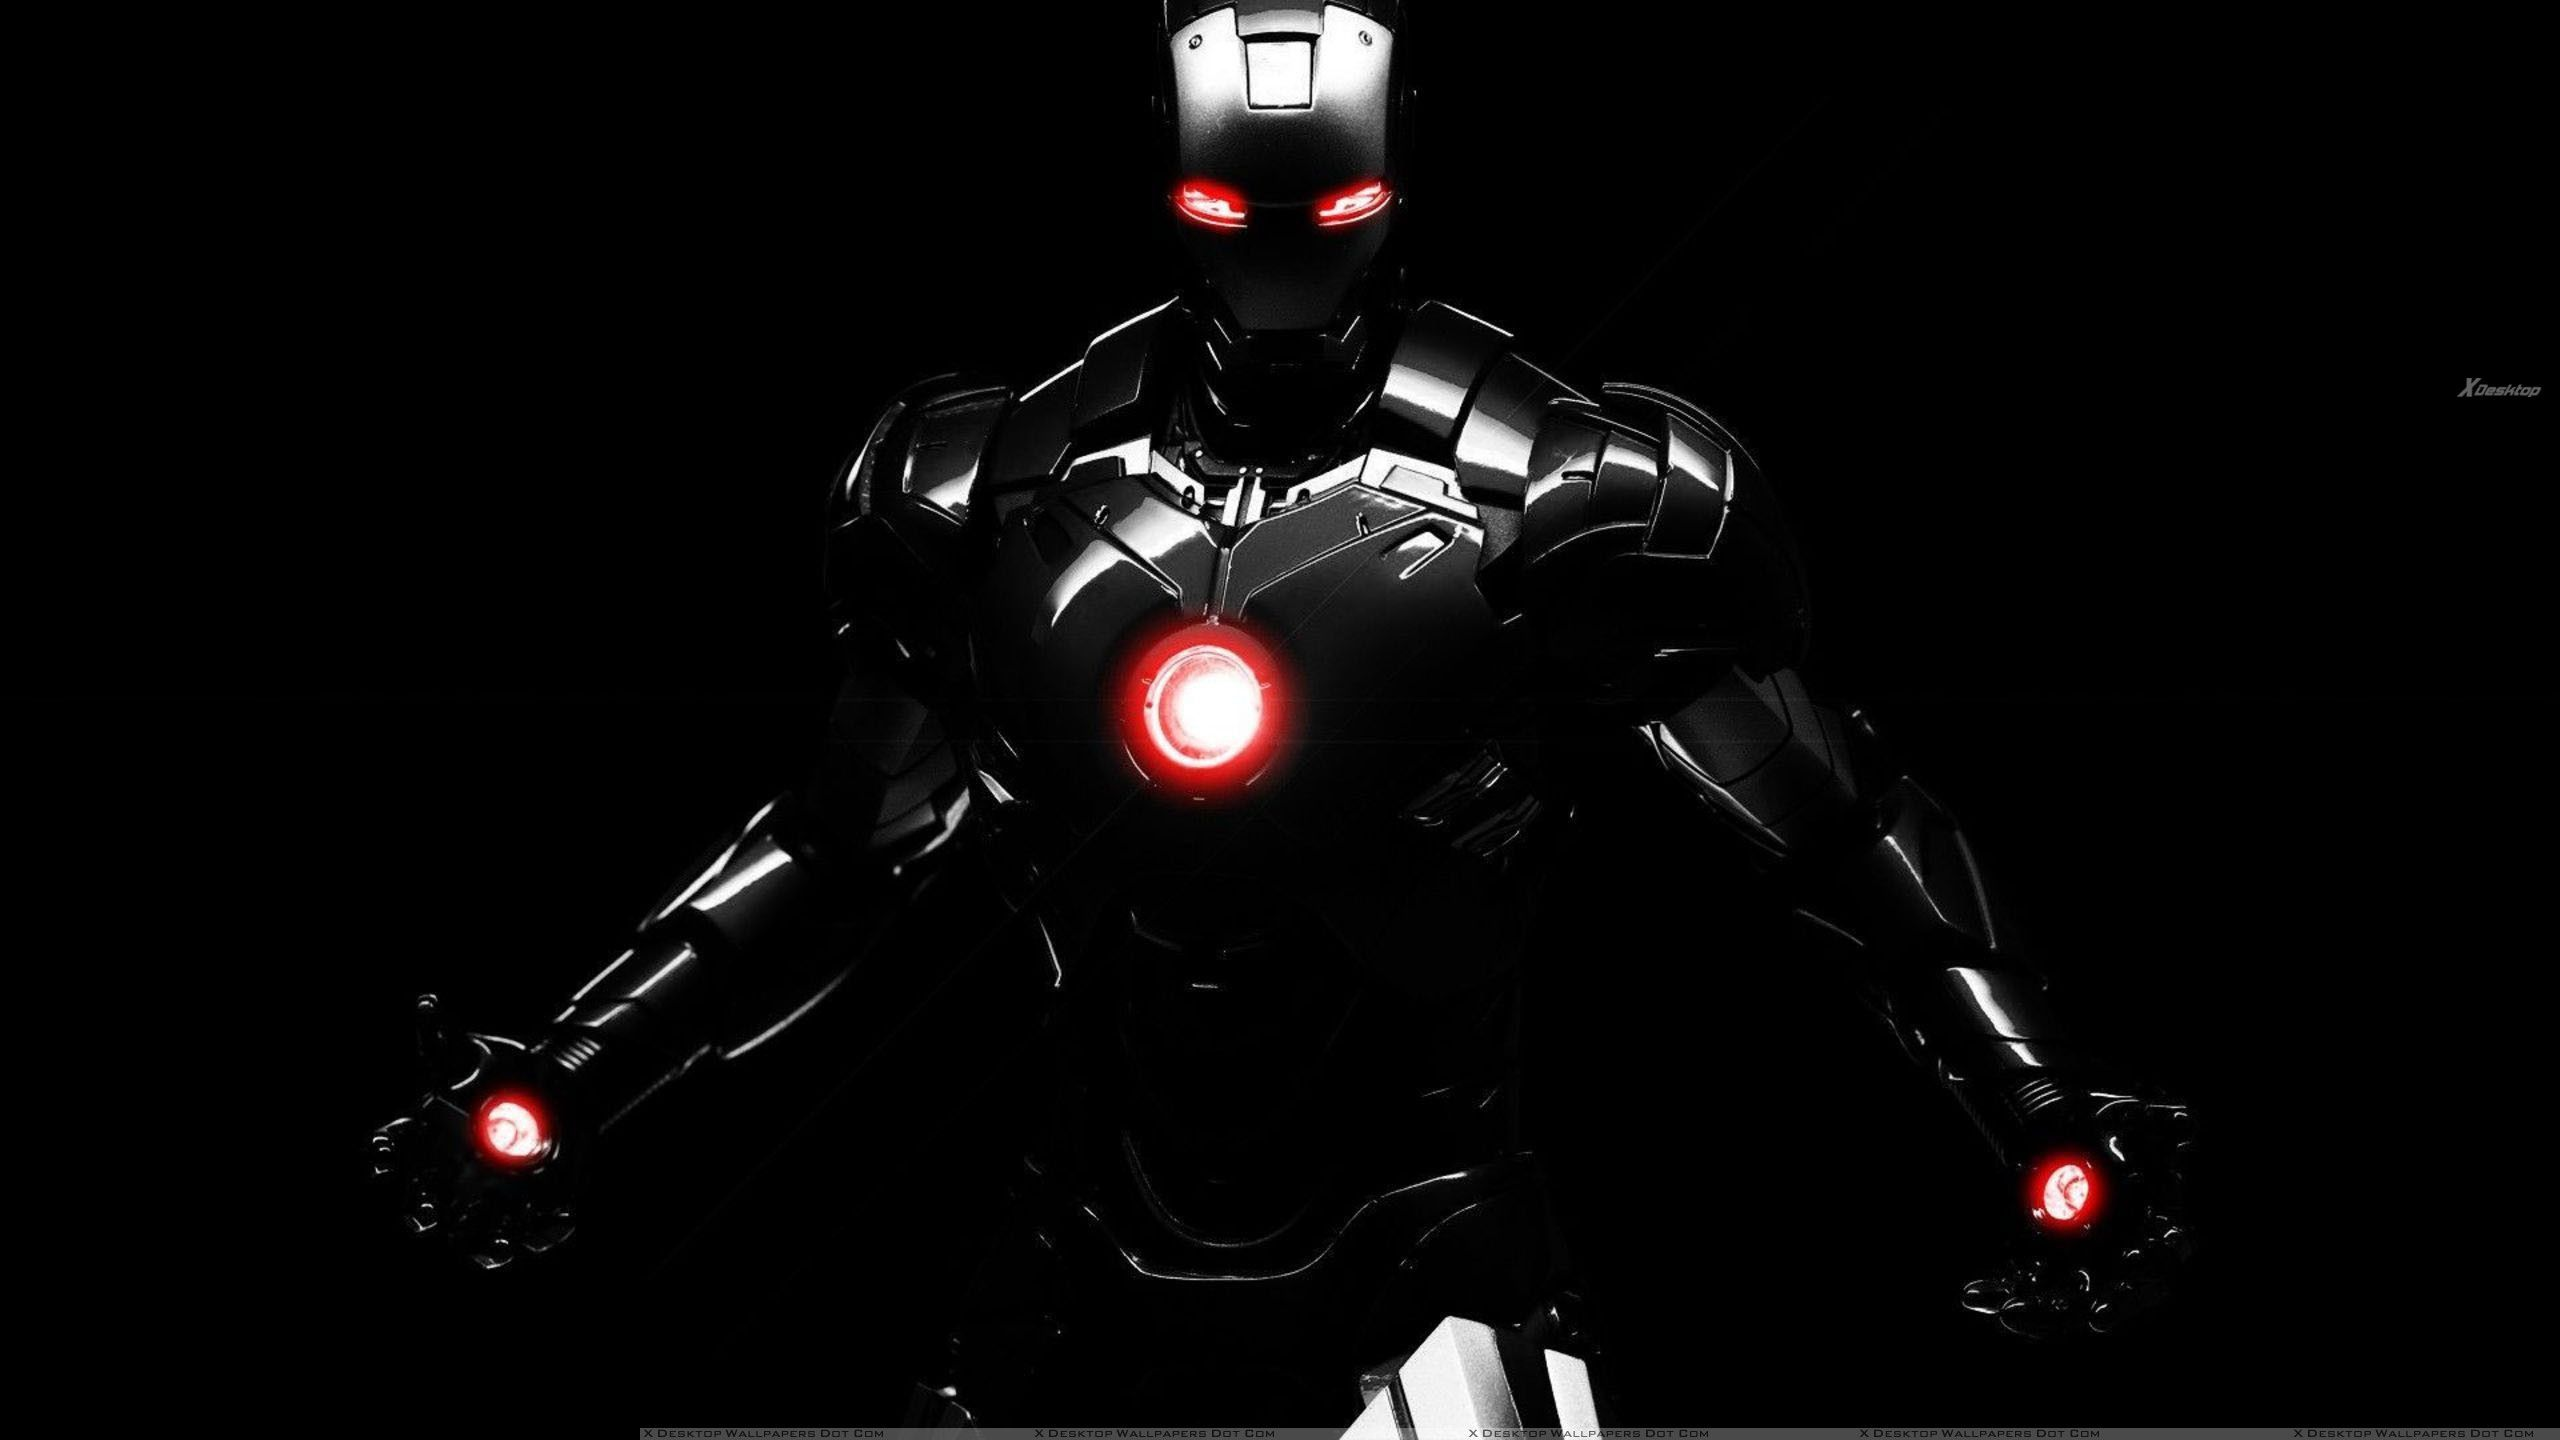 Awesome Iron Man 3 Photos In Hd